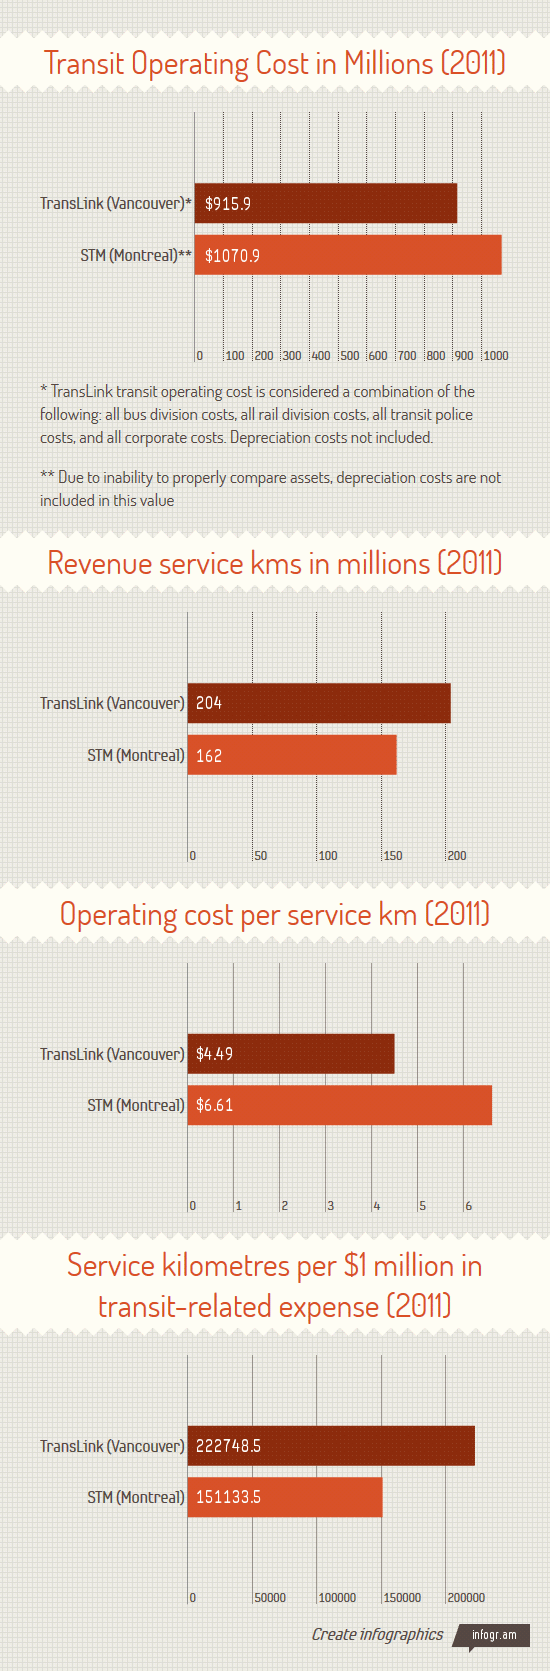 Operating cost per service km: TransLink vs STM